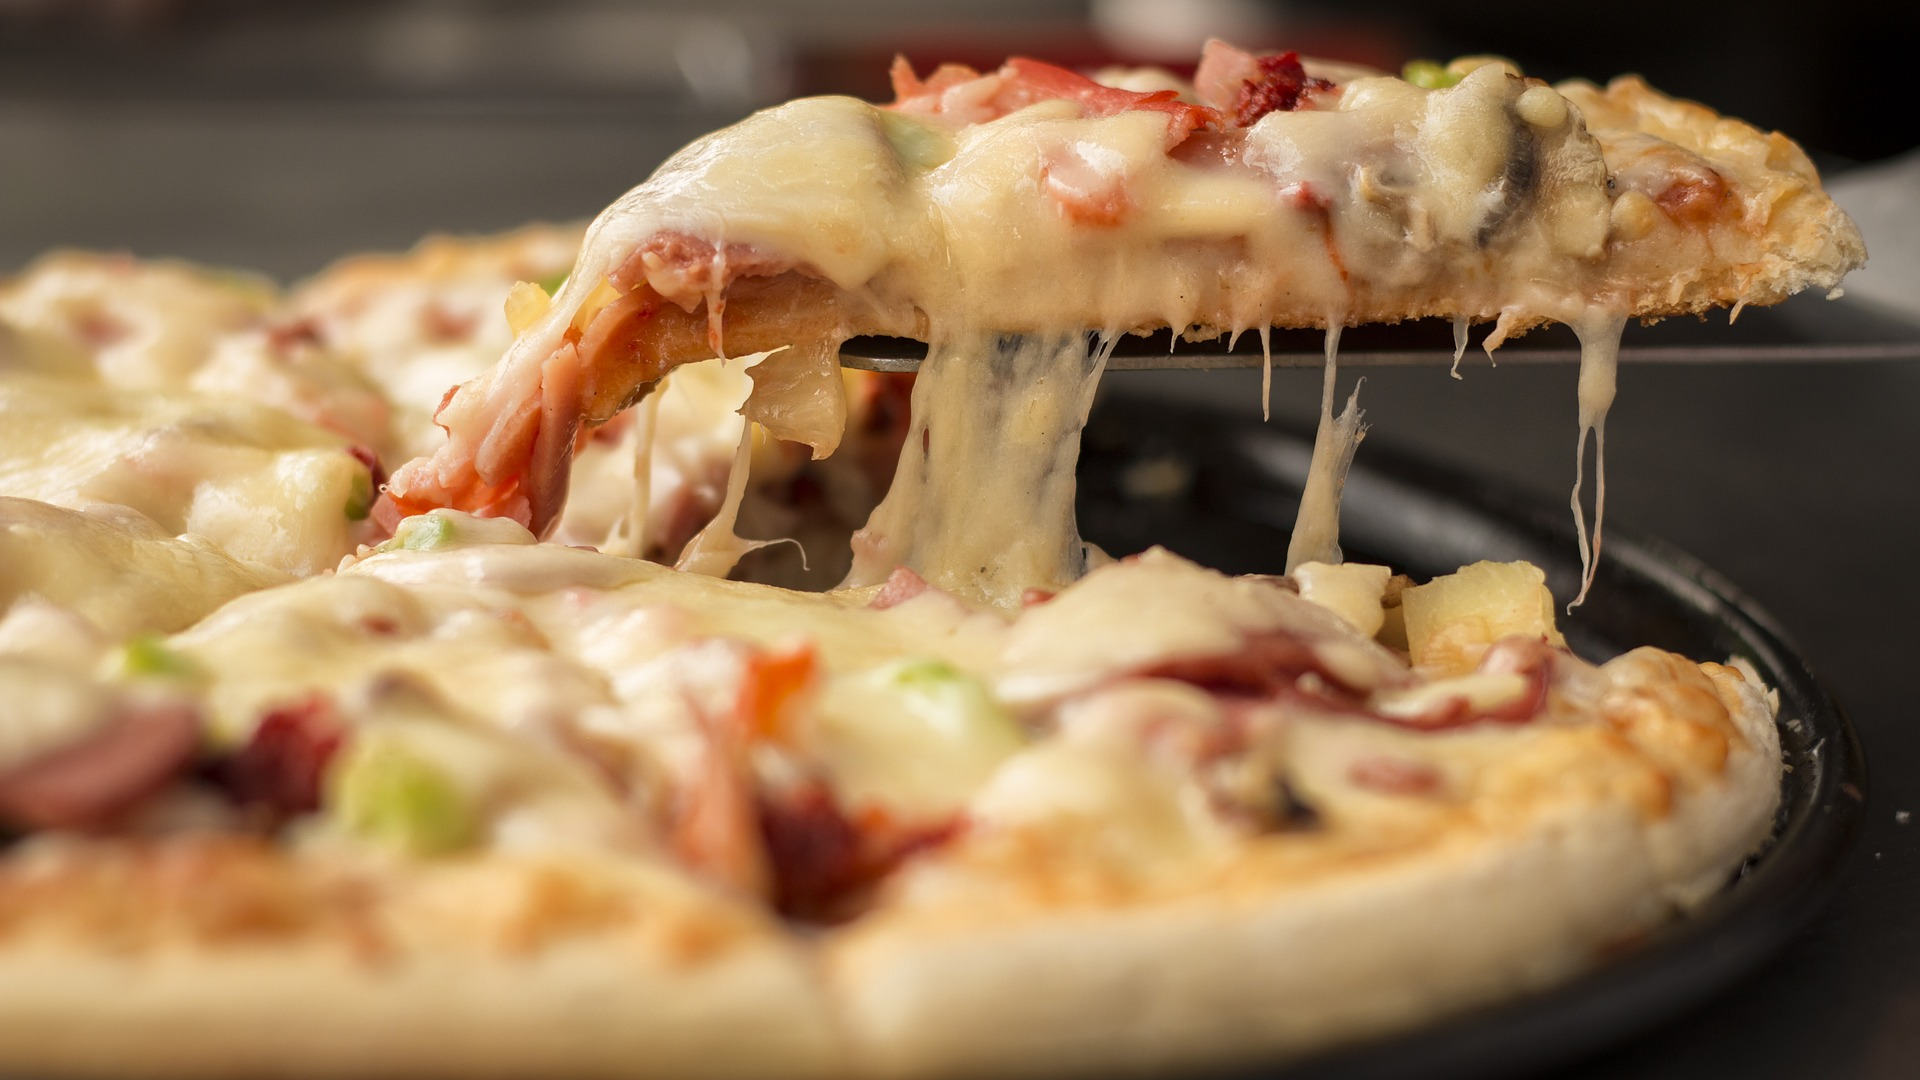 Enjoy an authentic slice of pizza at Avellino's Pizza & Grille.